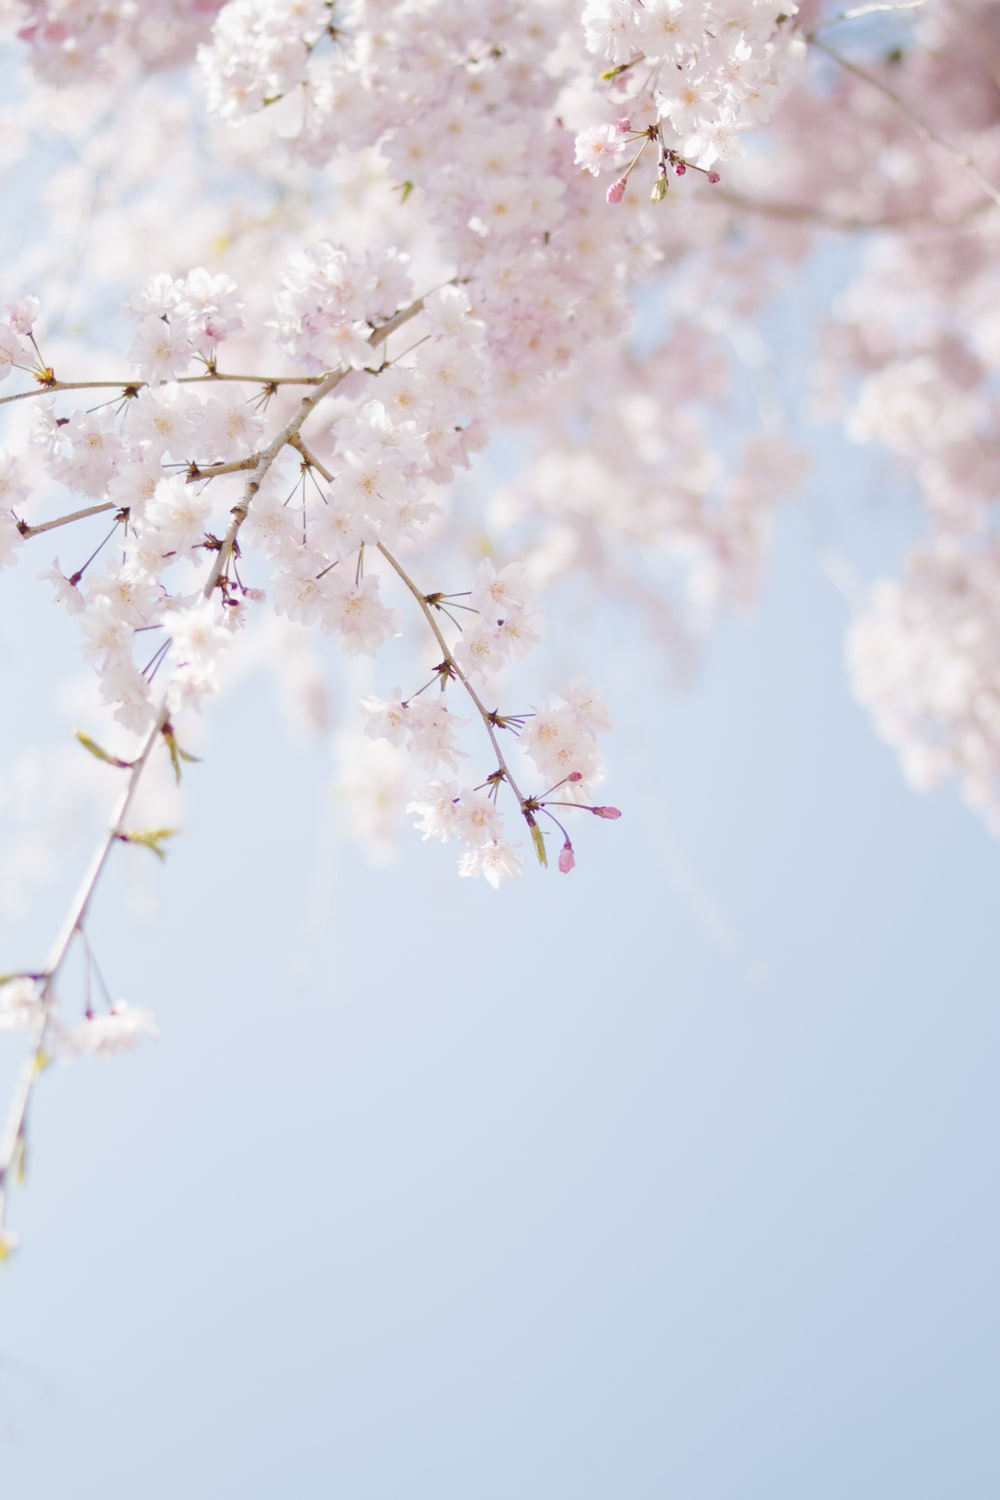 Cherry Blossom Wallpapers Free Hd Download 500 Hq Unsplash